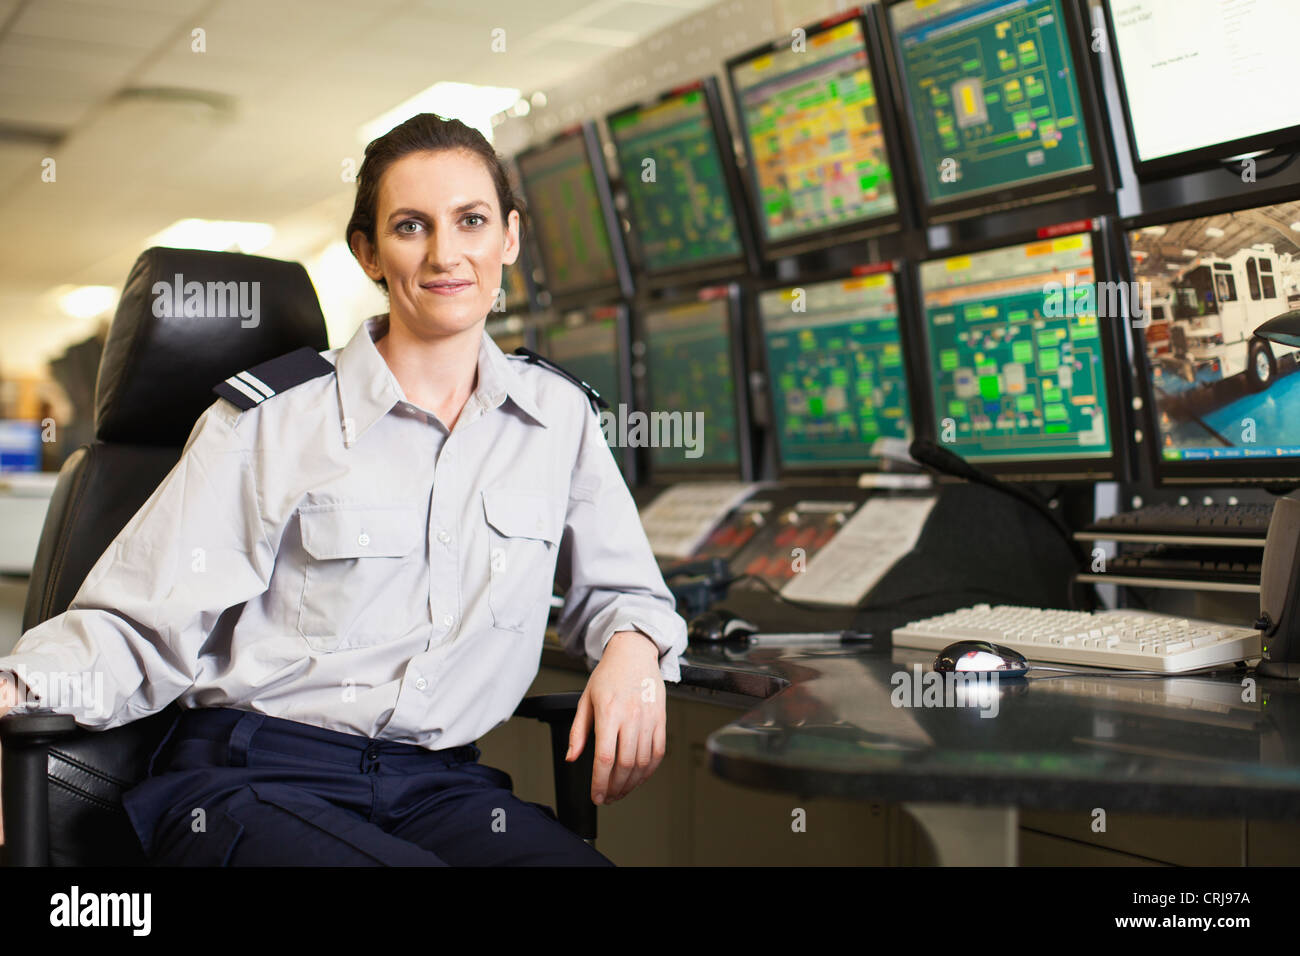 Woman working in security control room - Stock Image